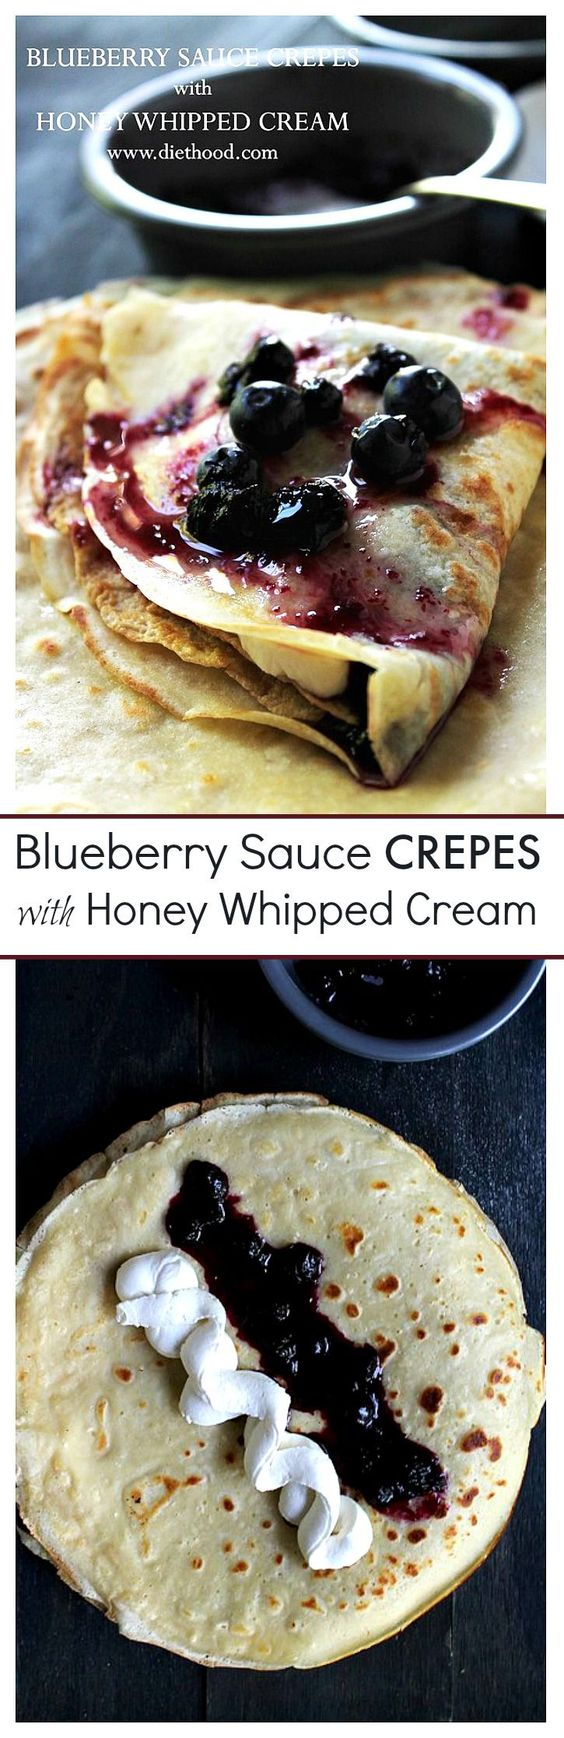 blueberry sauce whipped cream crepes blueberries honey sauces cream ...